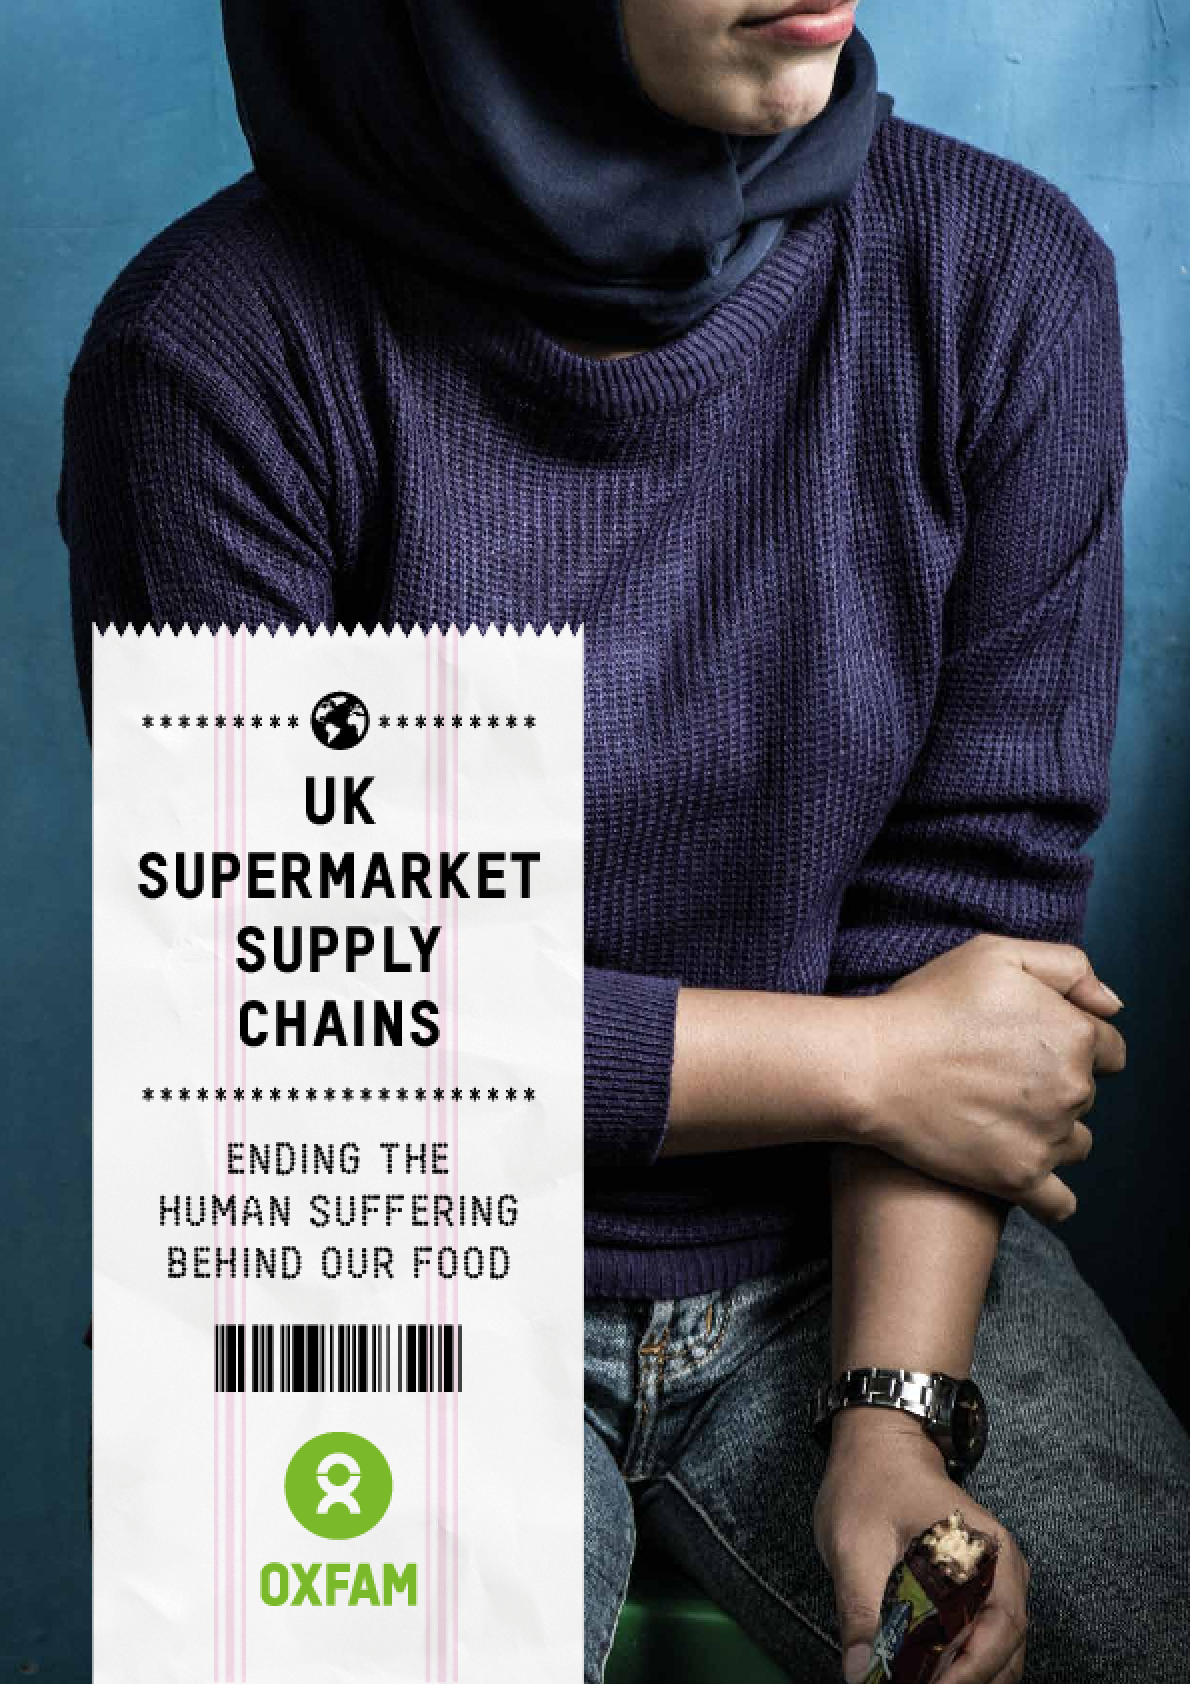 UK Supermarket Supply Chains: Ending the human suffering behind our food